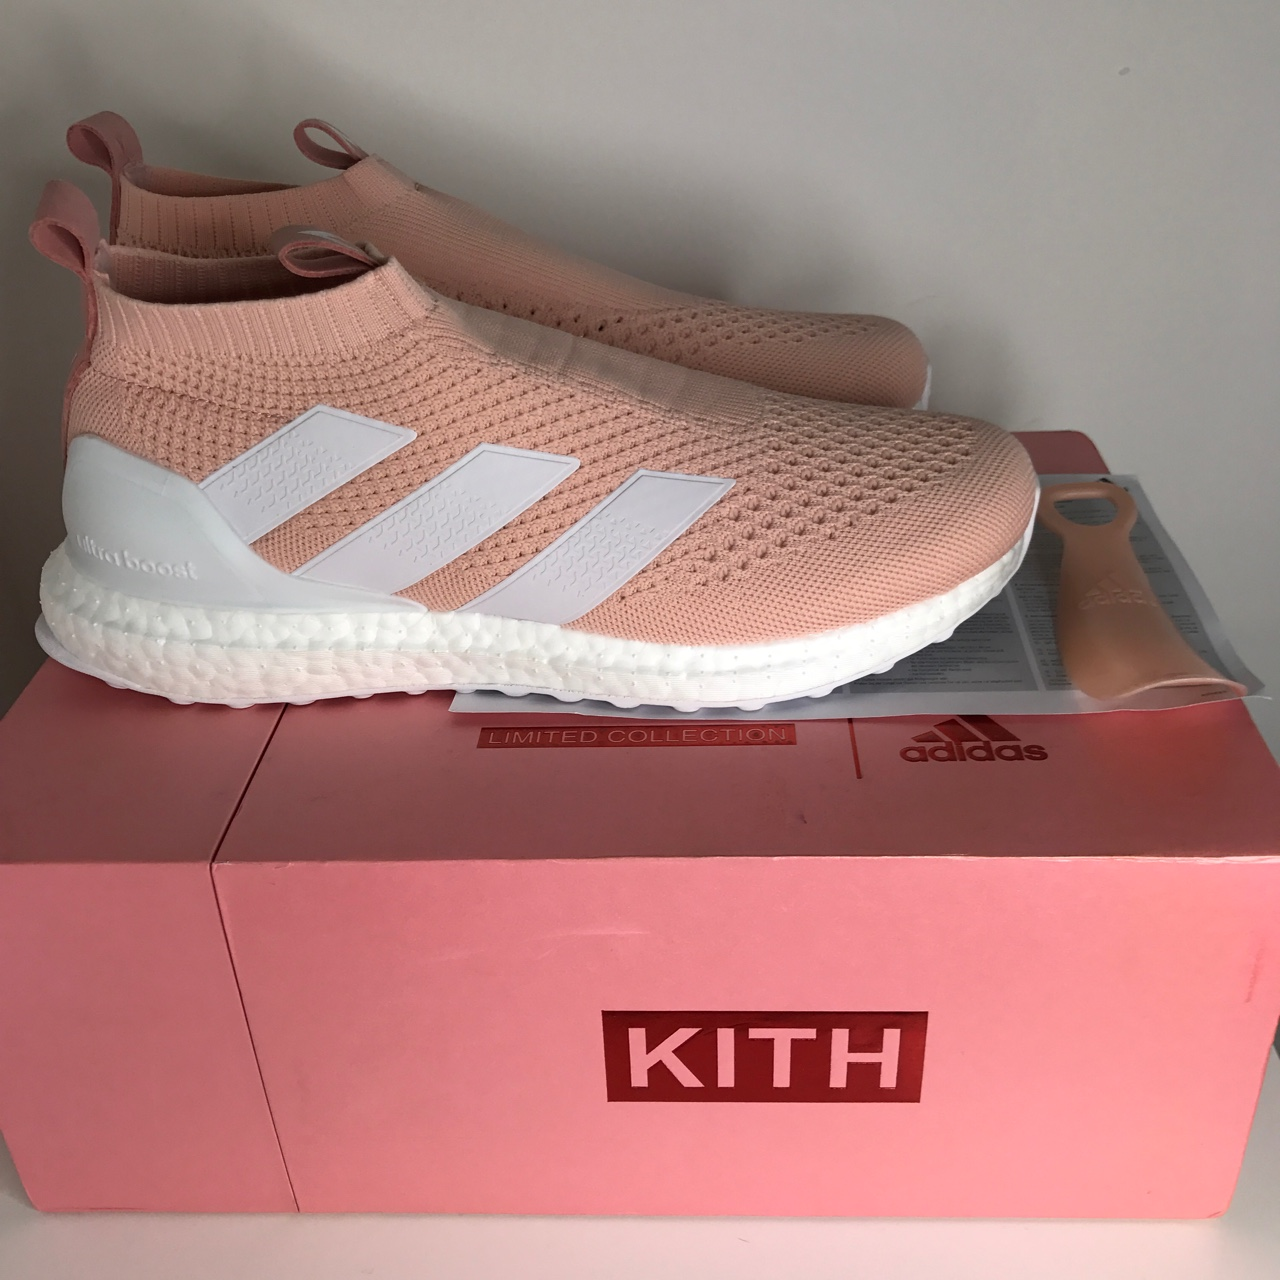 reputable site a5d5b 7af8b Adidas x Kith Ace PureControl 16 Ultra Boost for... - Depop